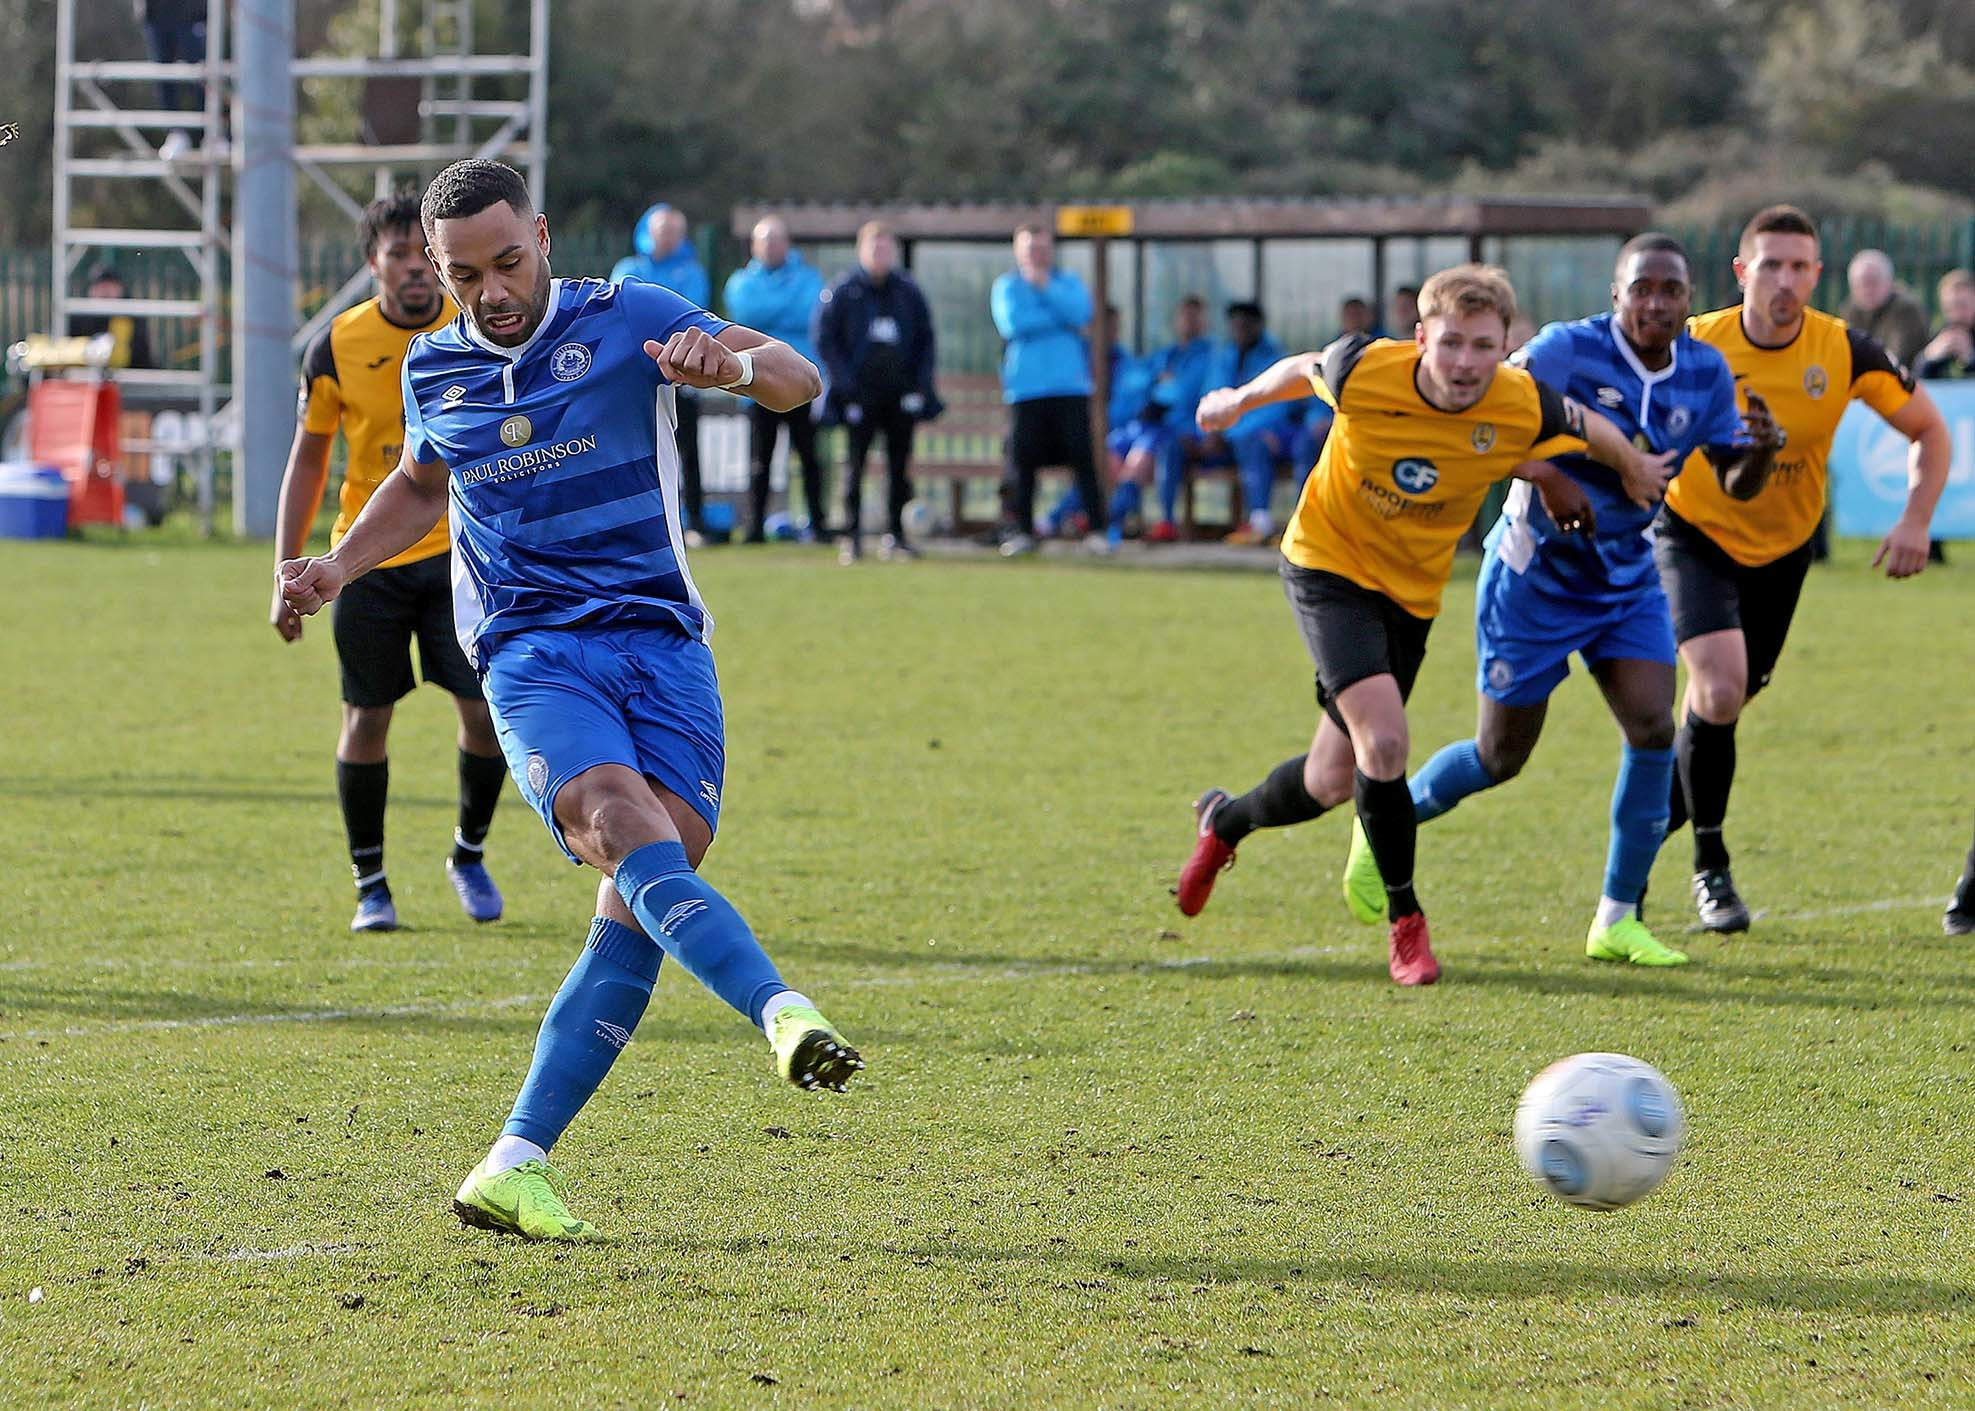 Opened the scoring - Adam Coombes' spot-kick was not enough for Billericay Town Picture: NICKY HAYES/iCORE LTD